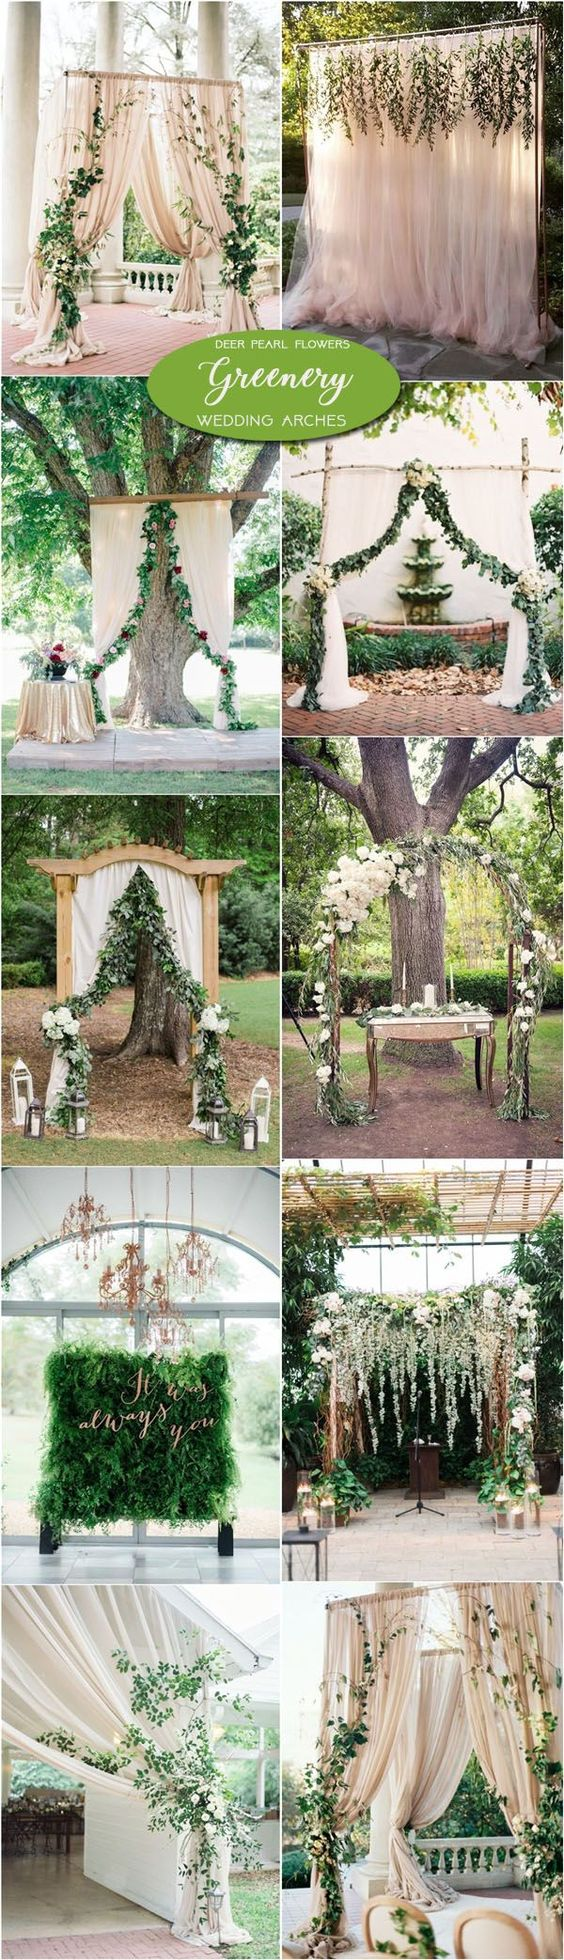 wedding trends greenery wedding decor ideas greenery